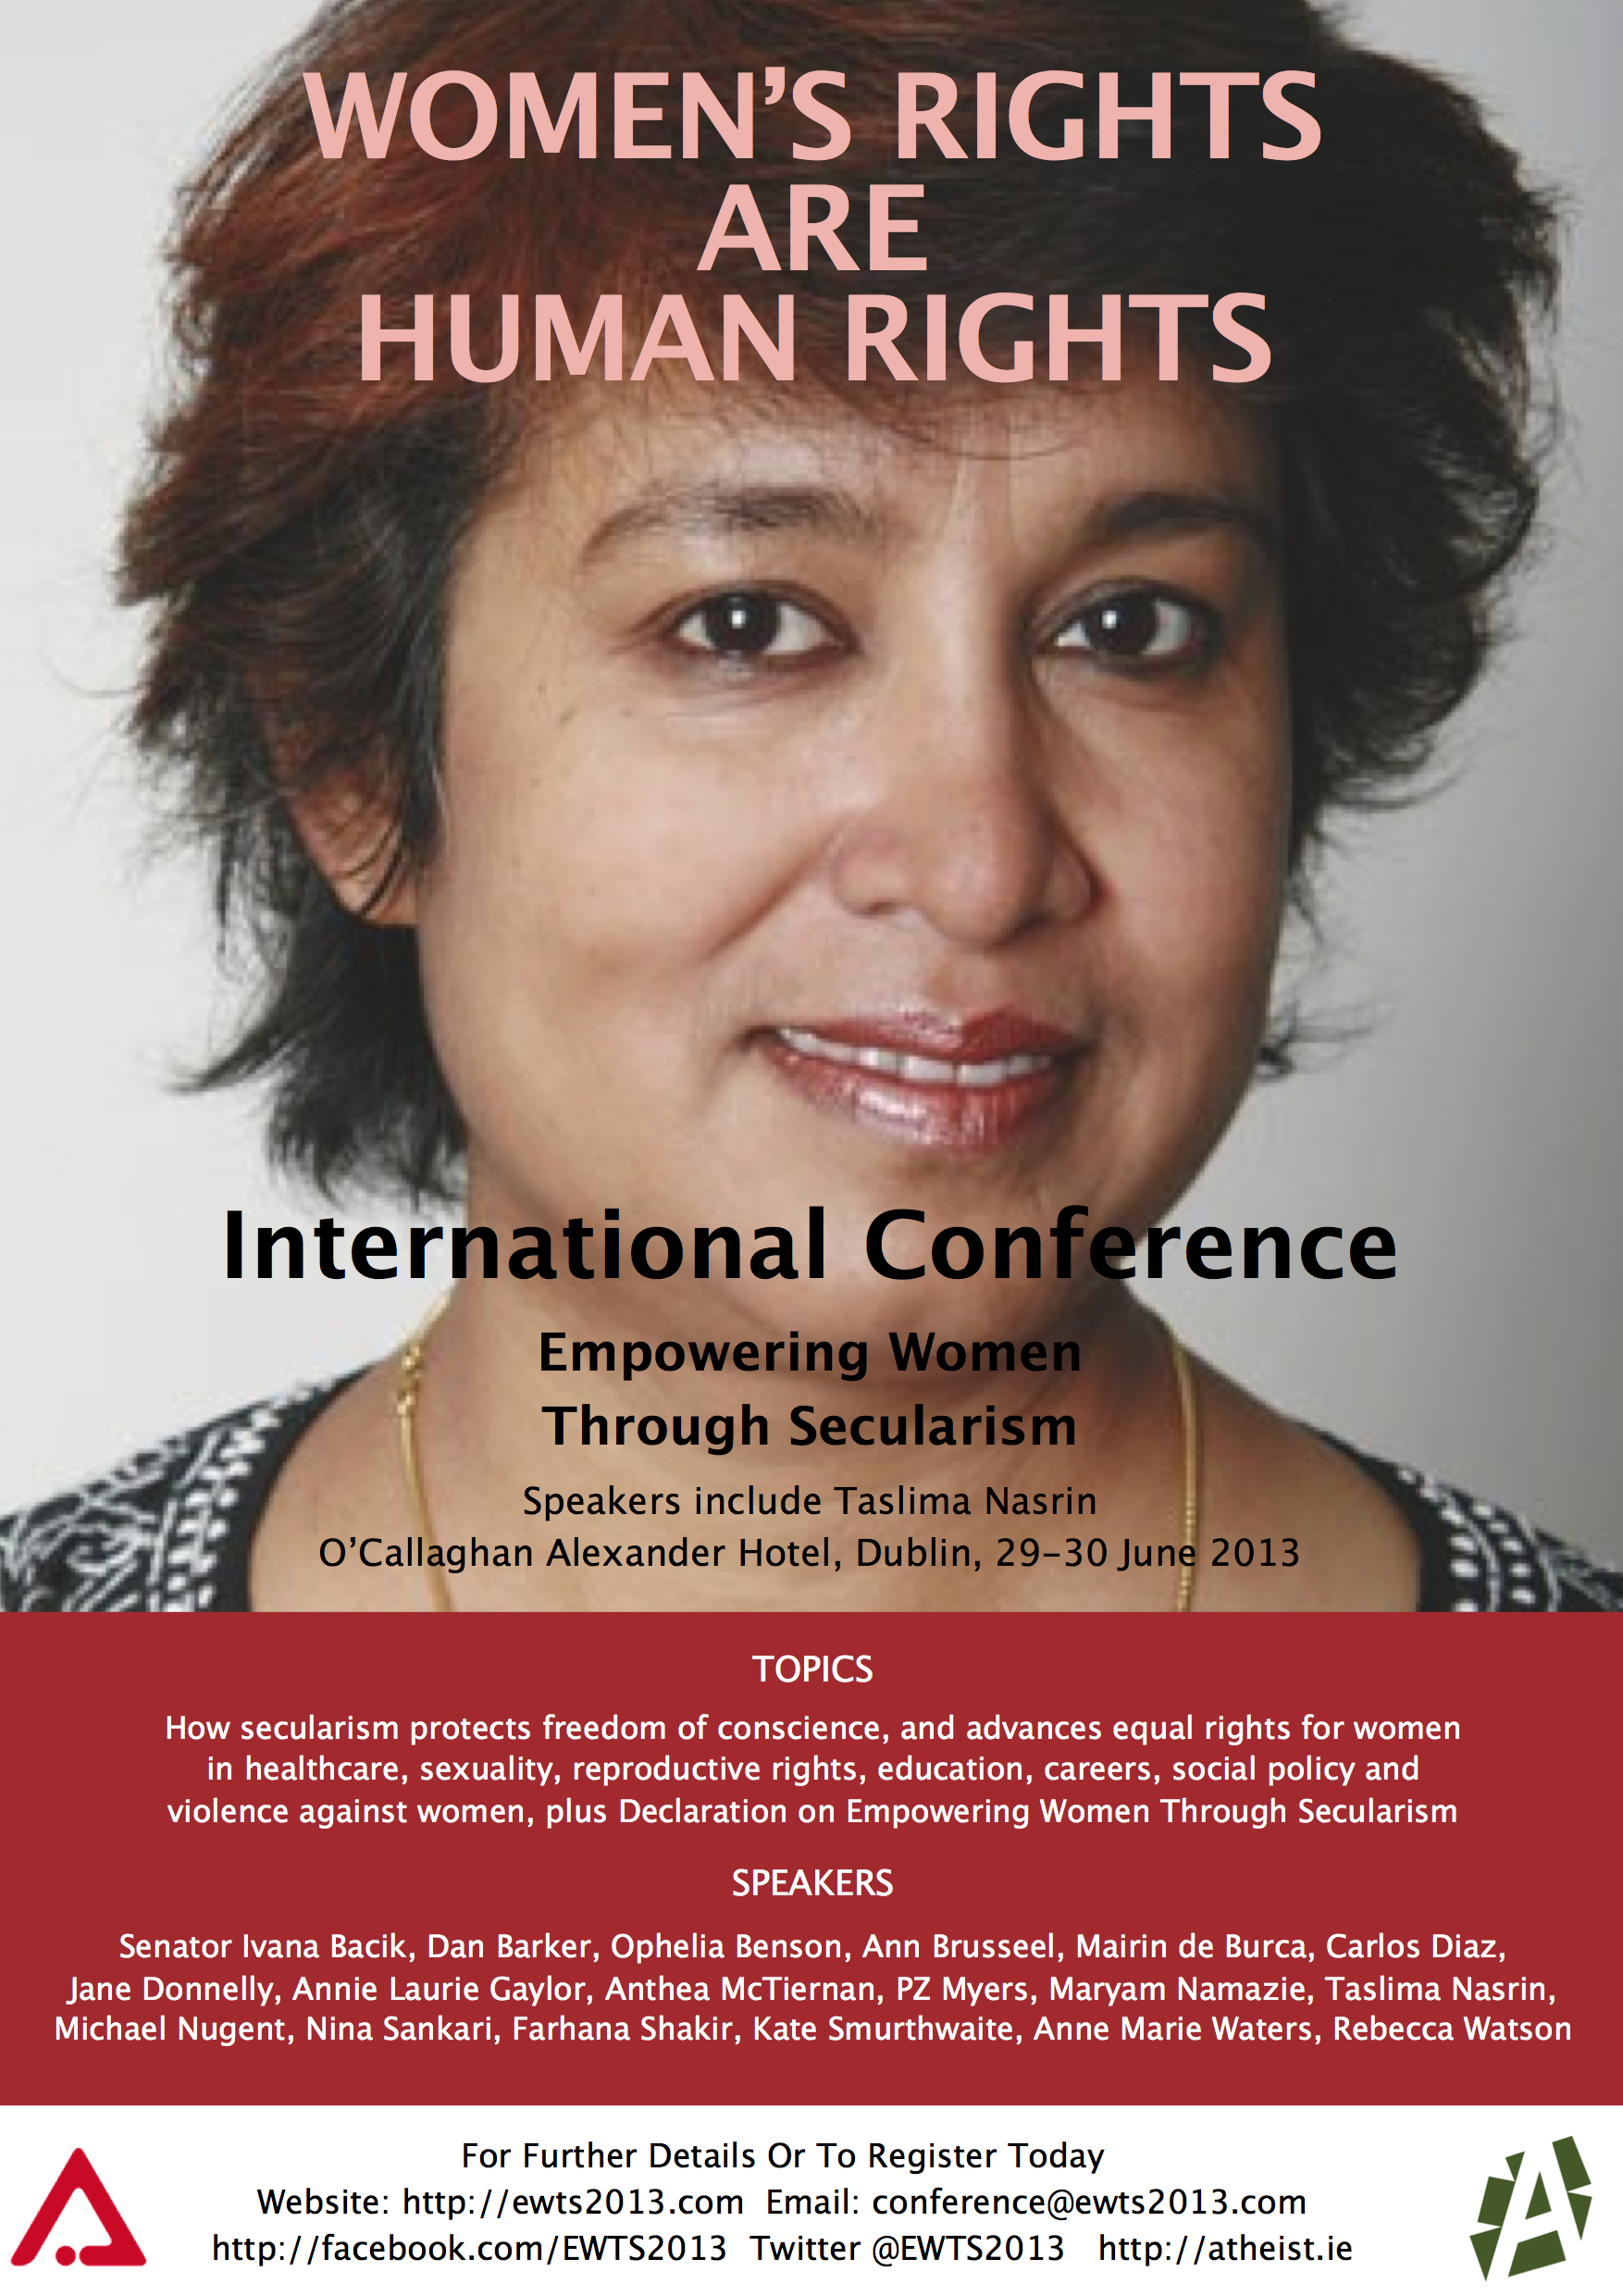 international conference on women empowerment Women, the international labour organization, the oecd, and the united nations development programme  emphasized at the global conference on women's economic empowerment hosted jointly by canada and un women in ottawa in october 2011 in the conference's statement of action, canada, in line.